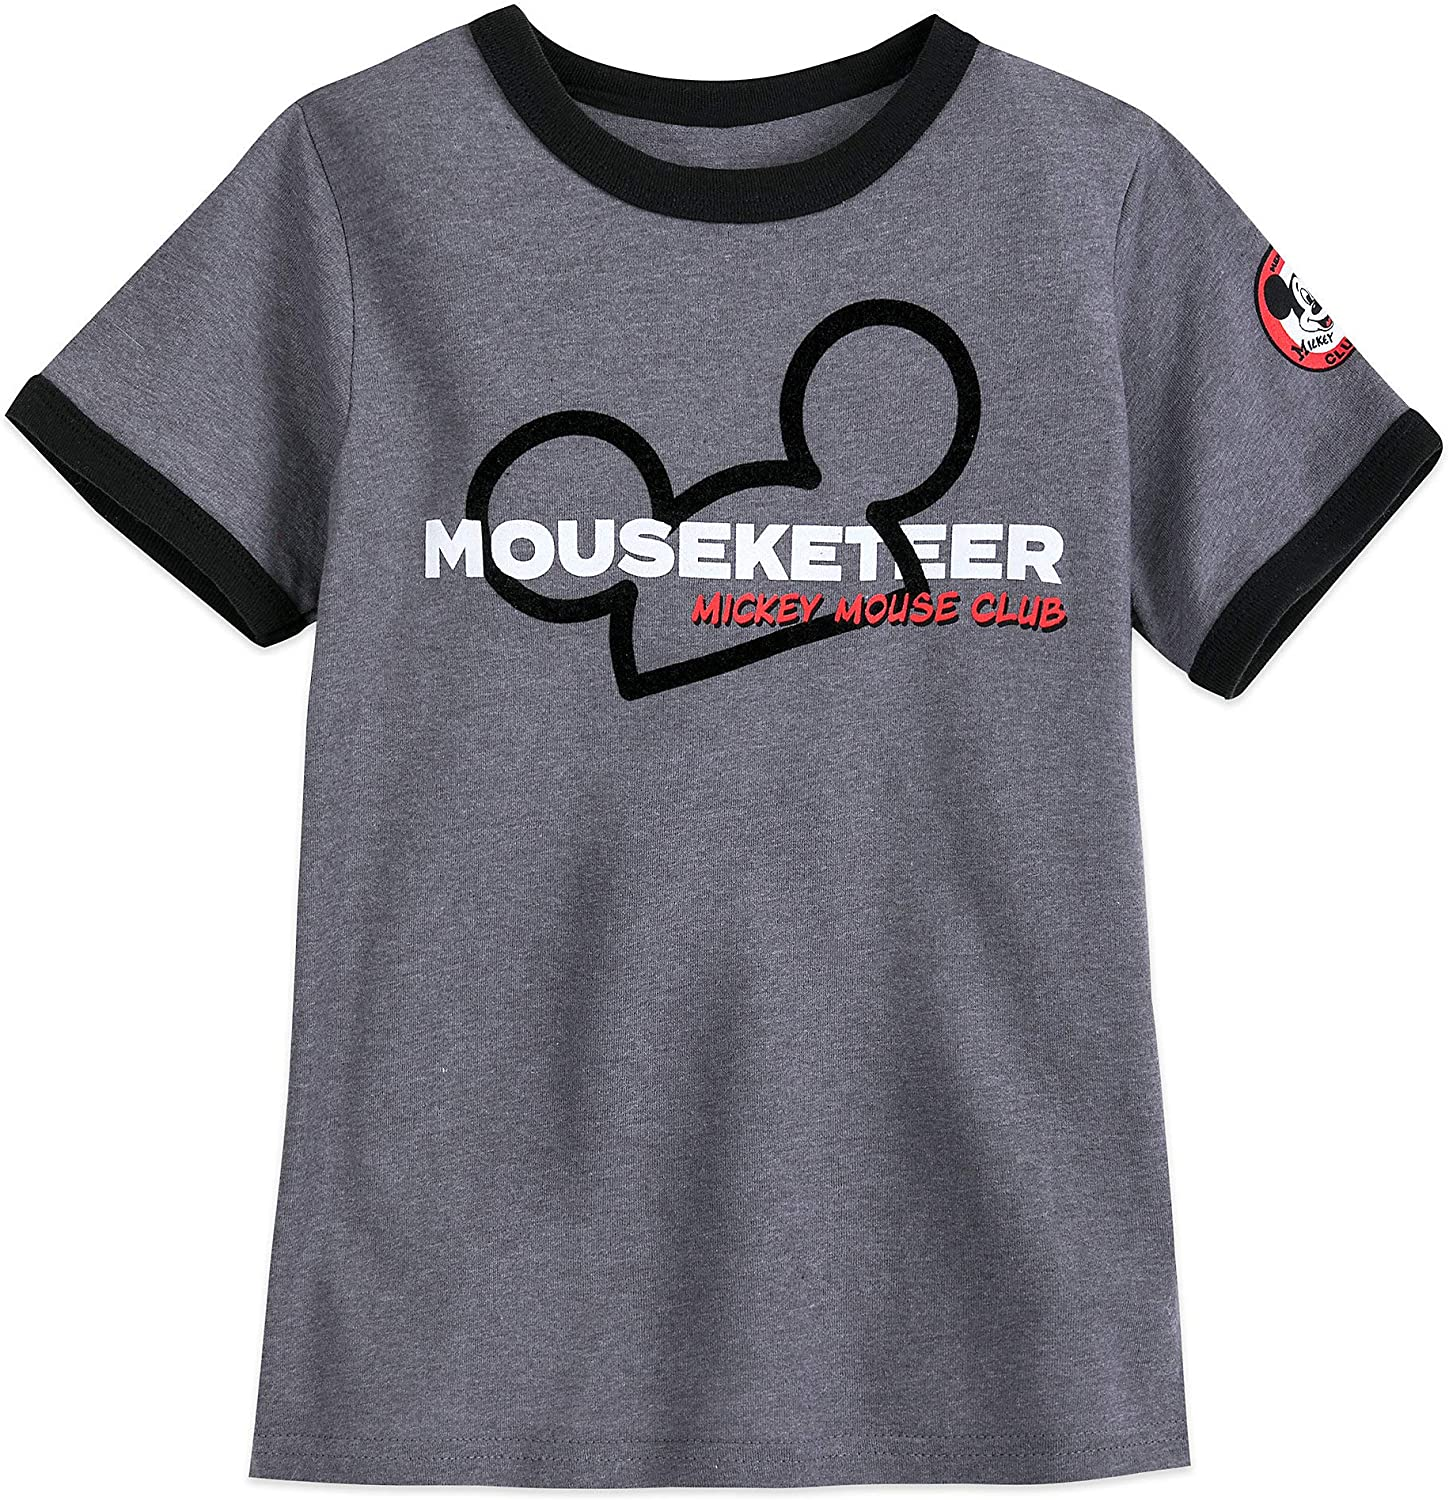 Disney The Mickey Mouse Club Mouseketeer Ringer T-Shirt for Boys